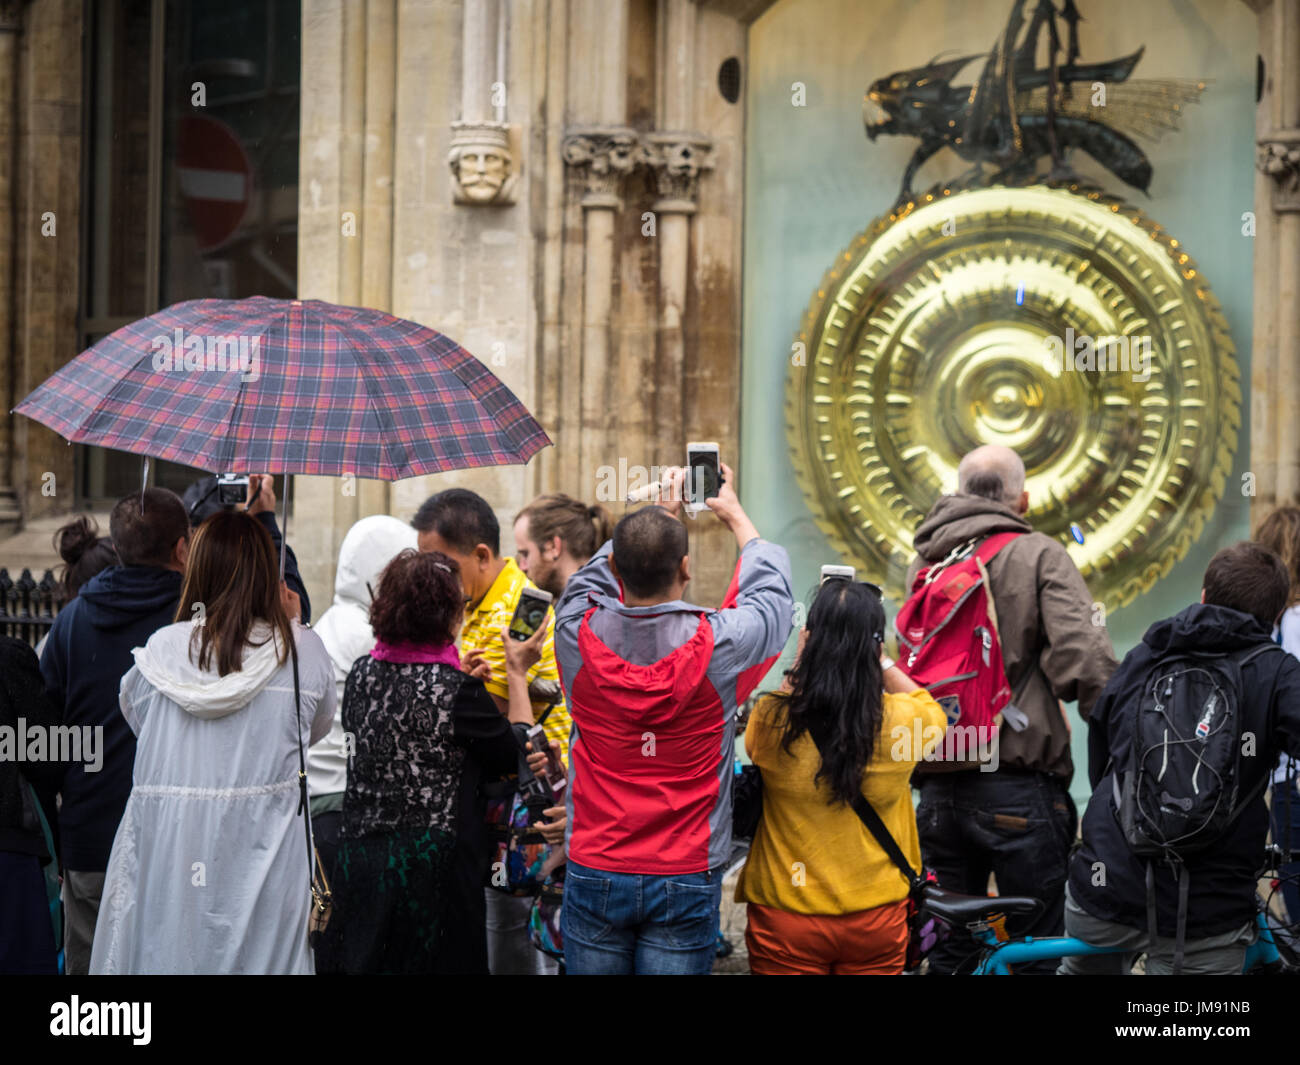 Cambridge Tourists take photos in front of the Corpus Clock at Corpus Christi College, Cambridge. It was unveilled in 2008 - Stock Image